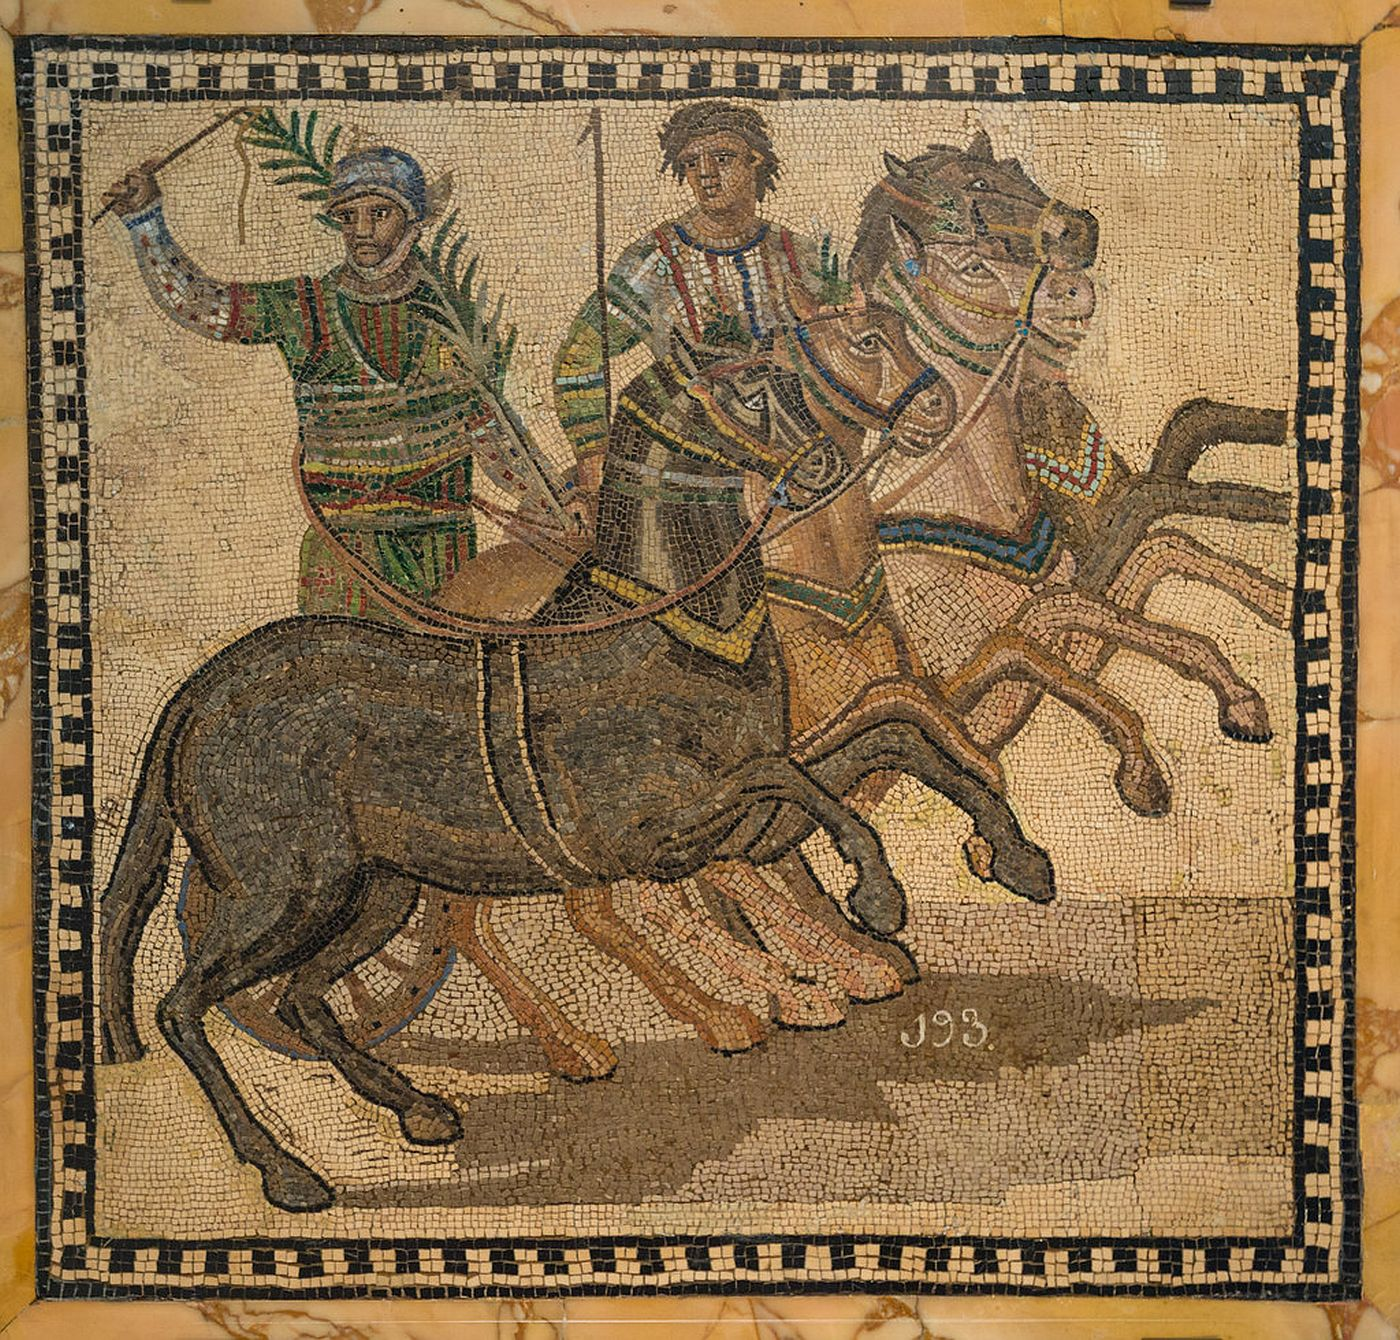 Winner of the chariot race on the Roman mosaic